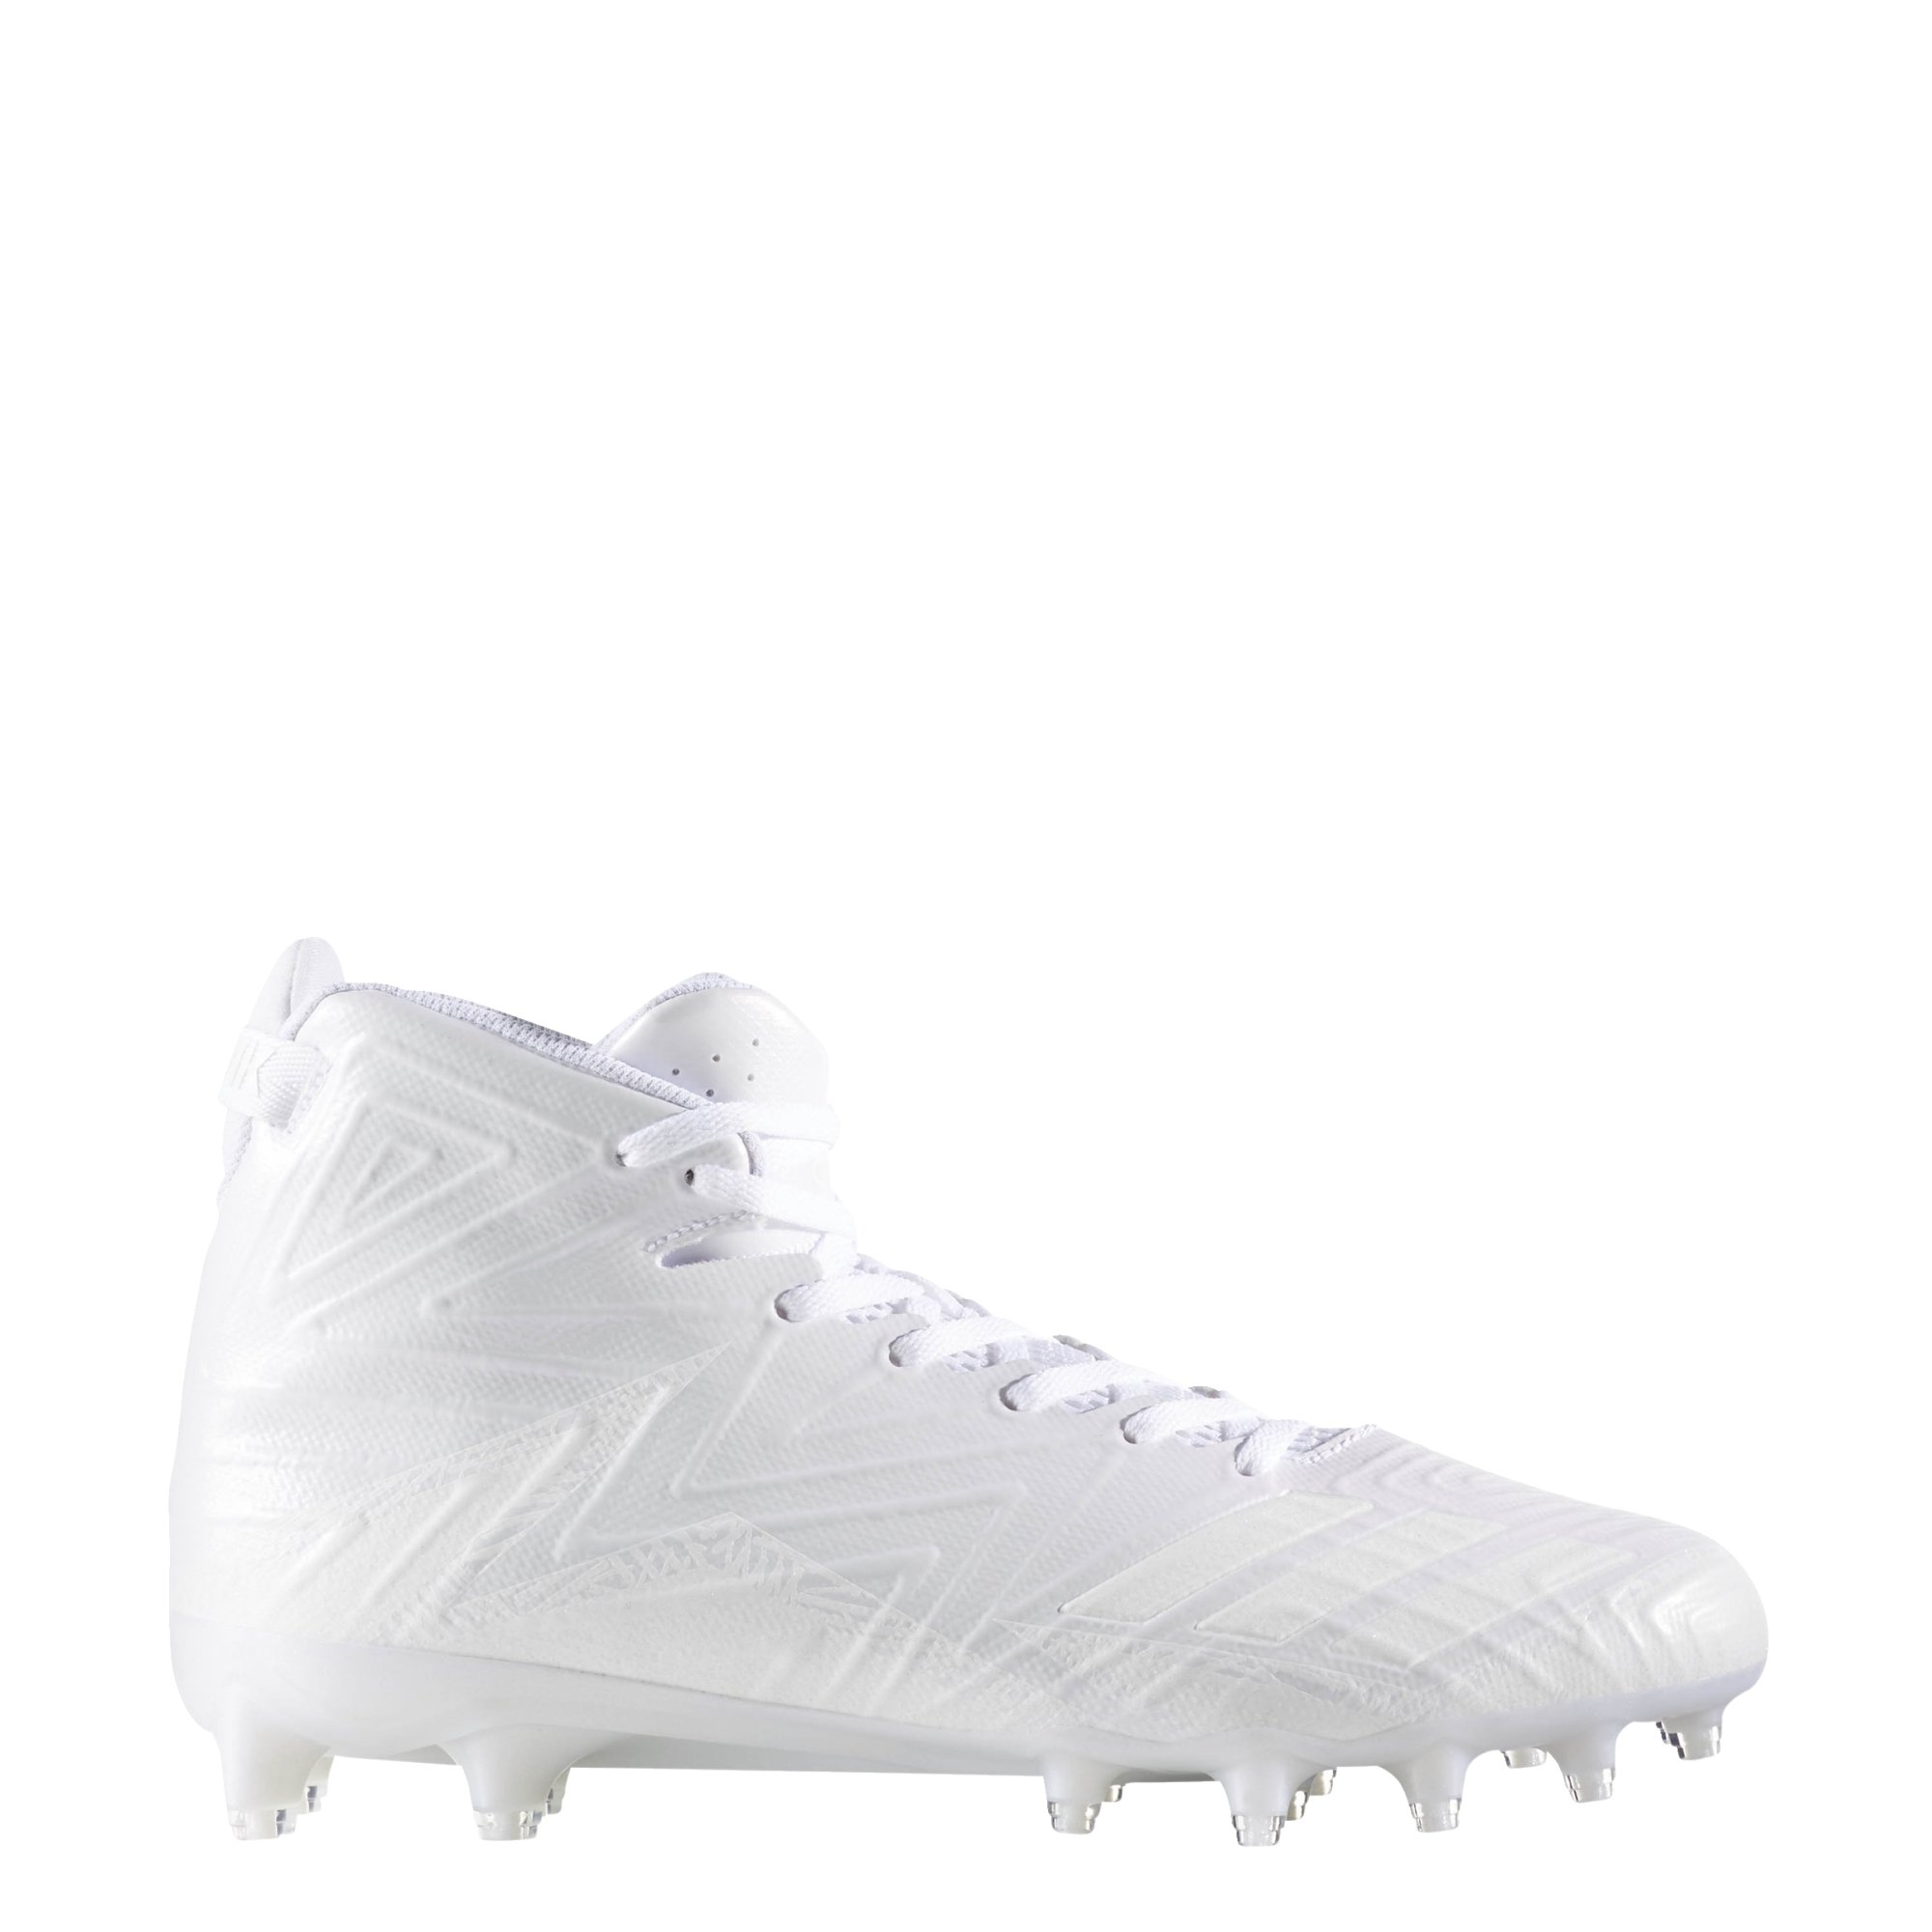 adidas Men's Freak X Carbon Mid Football Shoe, White/White/White, 13 Medium US by adidas